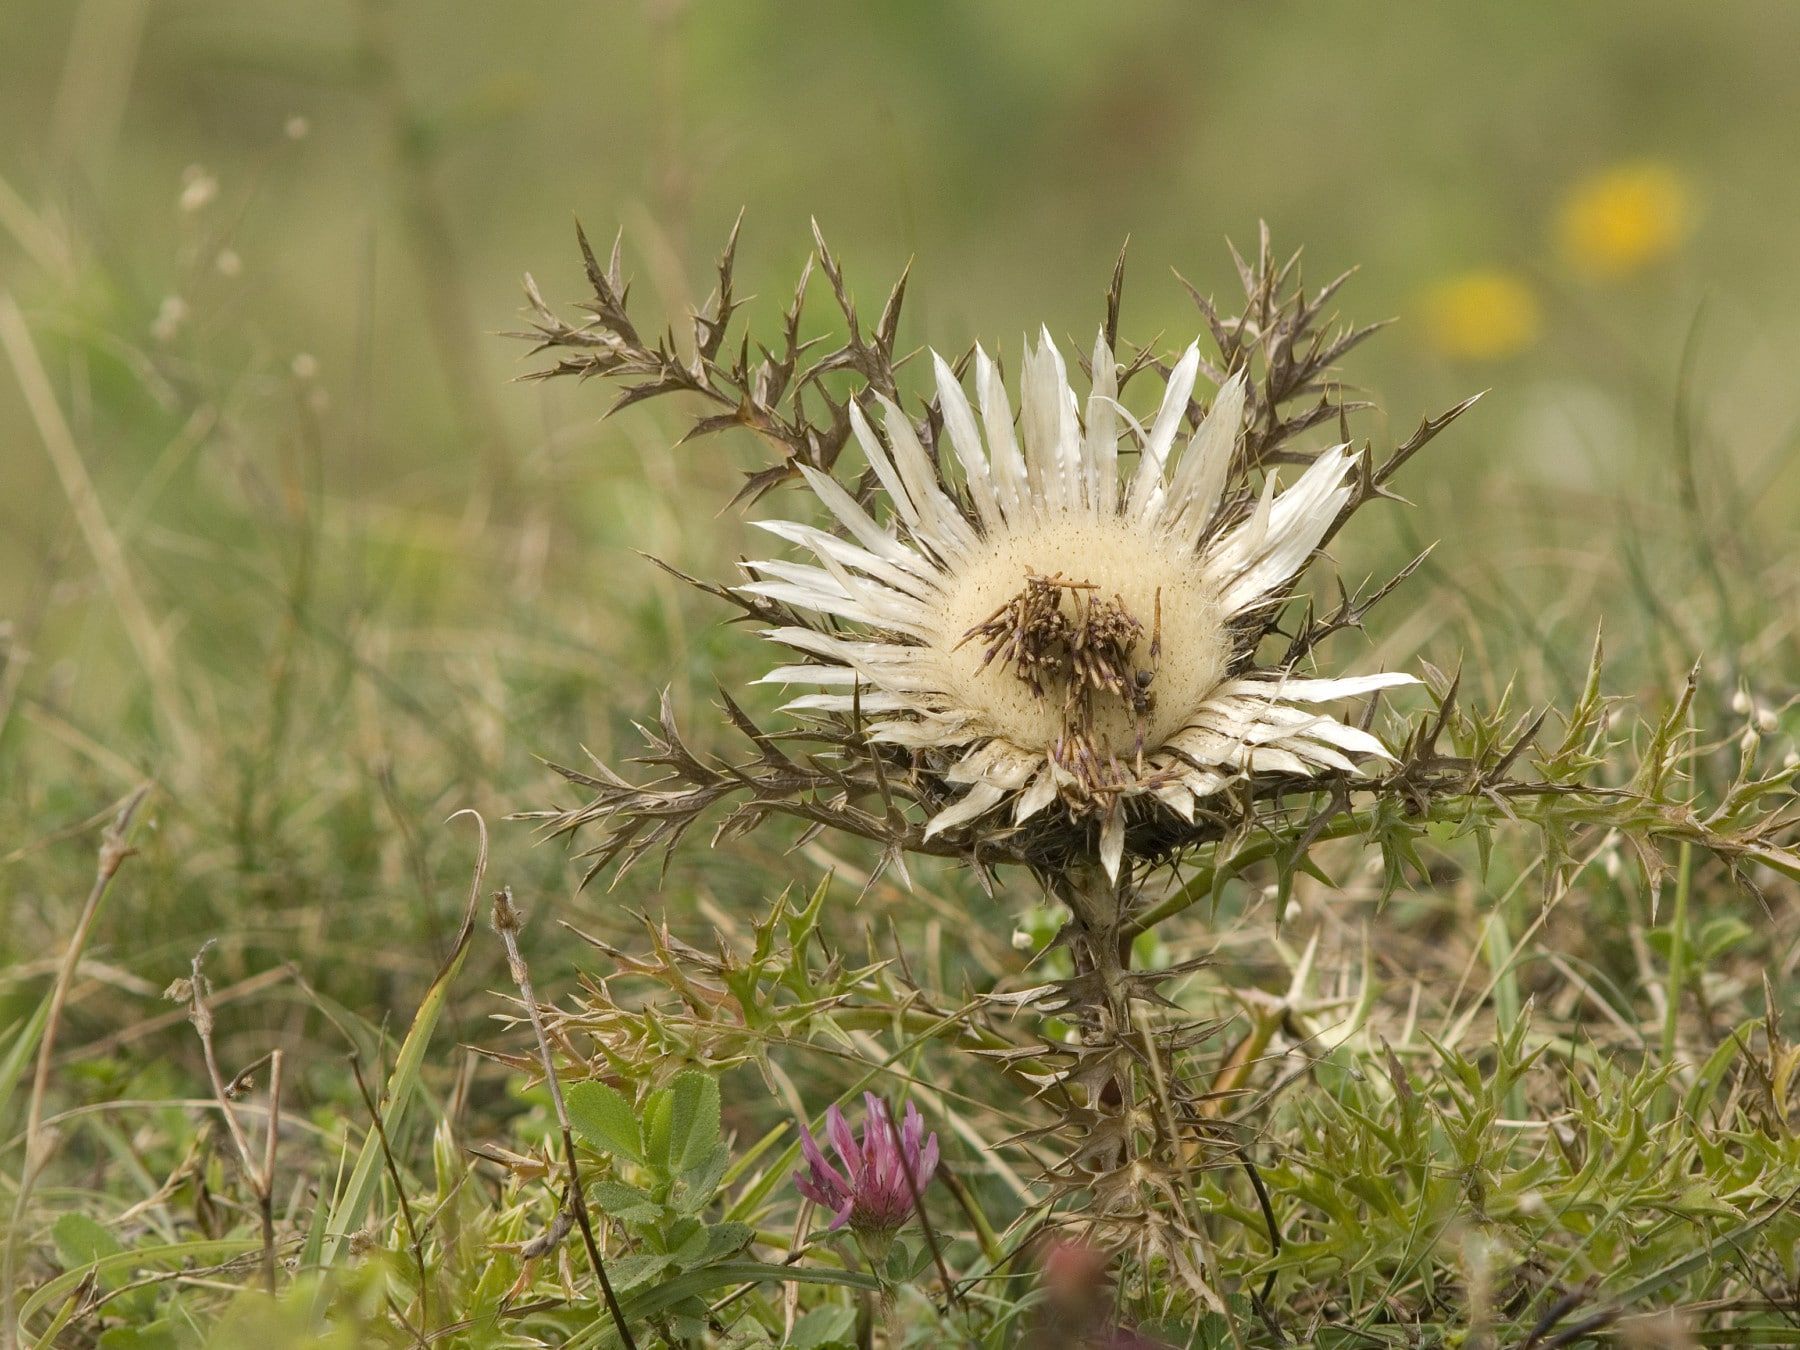 Photo shows a flowering silver thistle